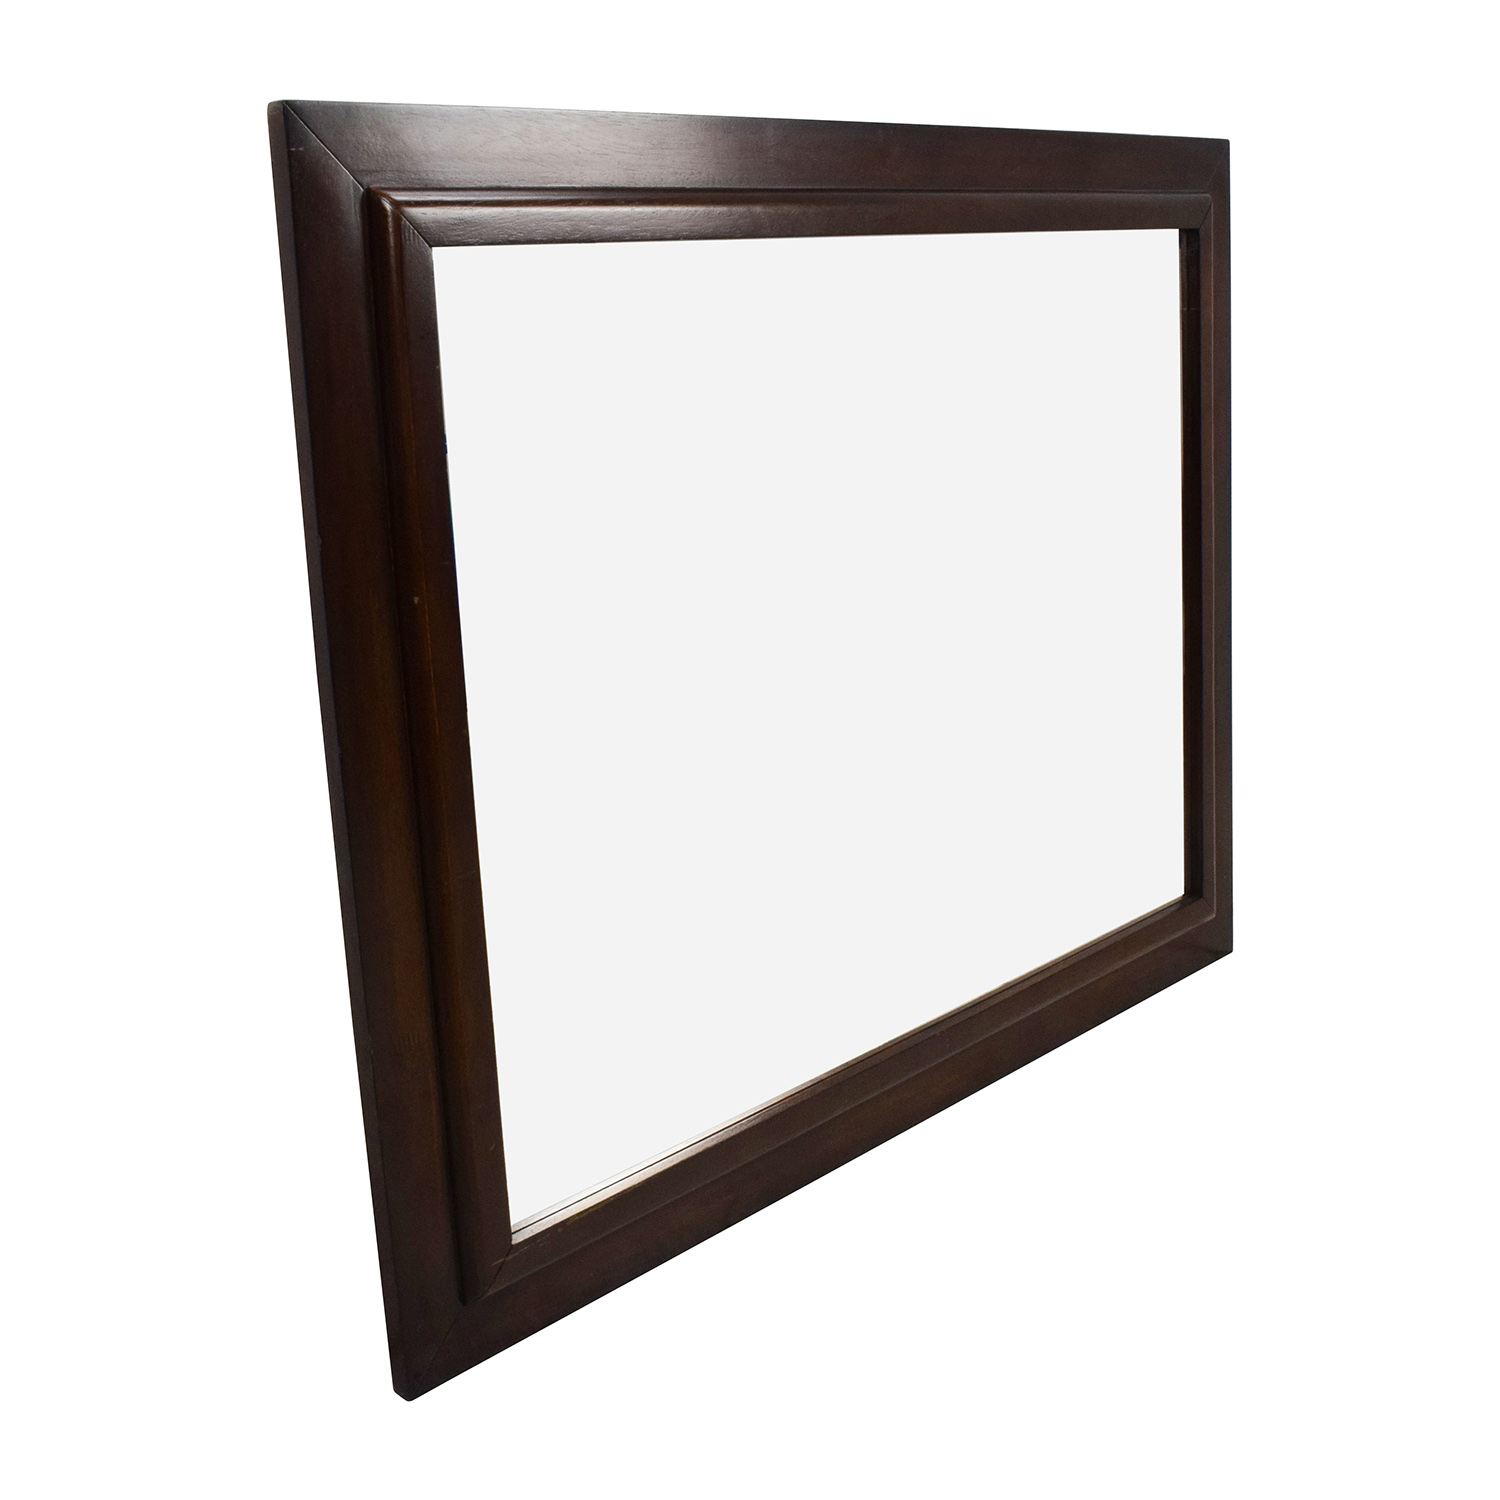 Large framed wall mirror